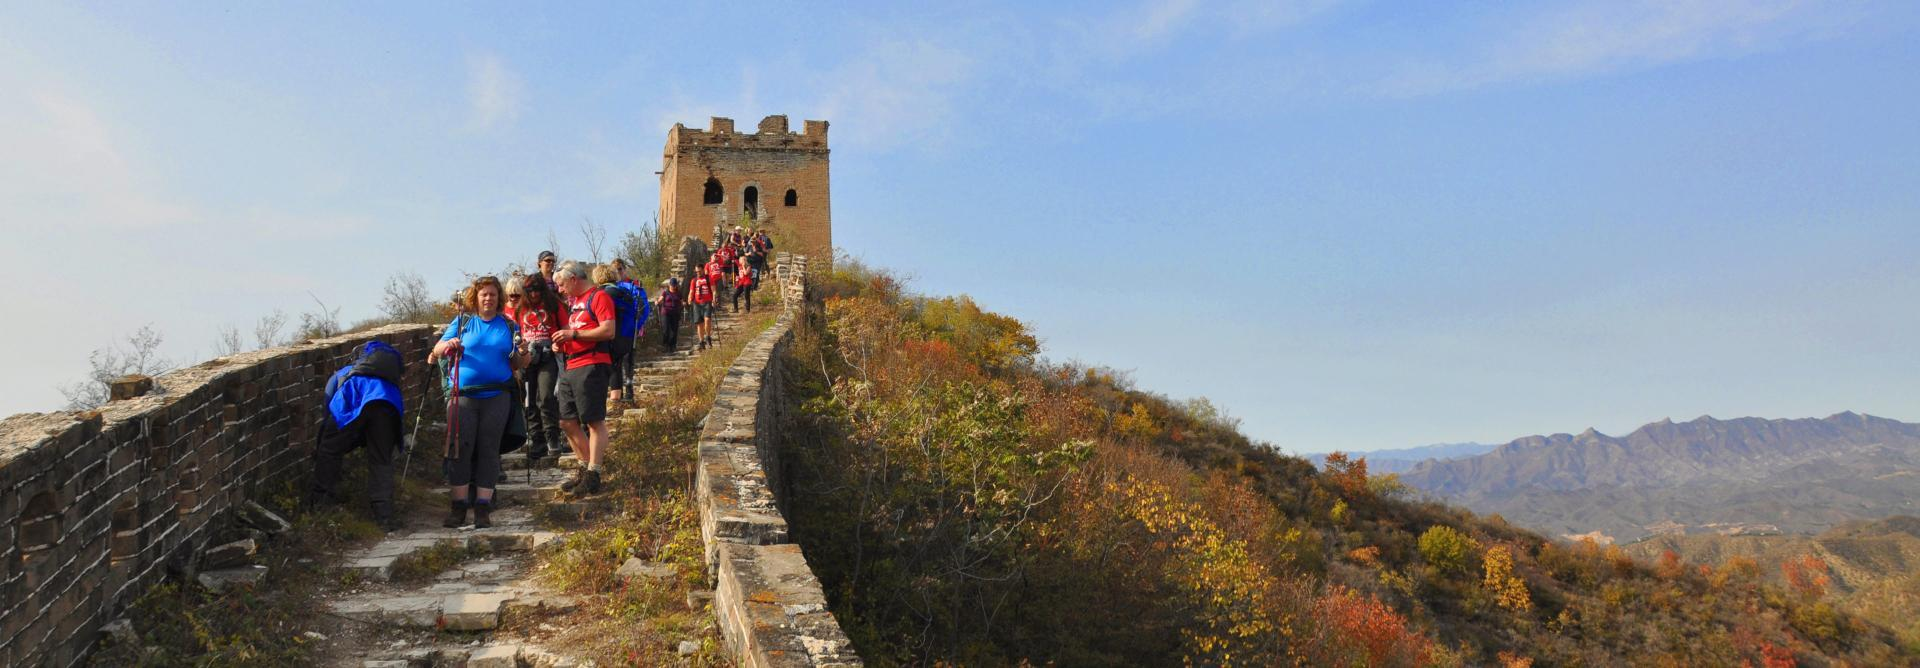 A watchtower on the Charity Challenge Great Wall Discovery trek